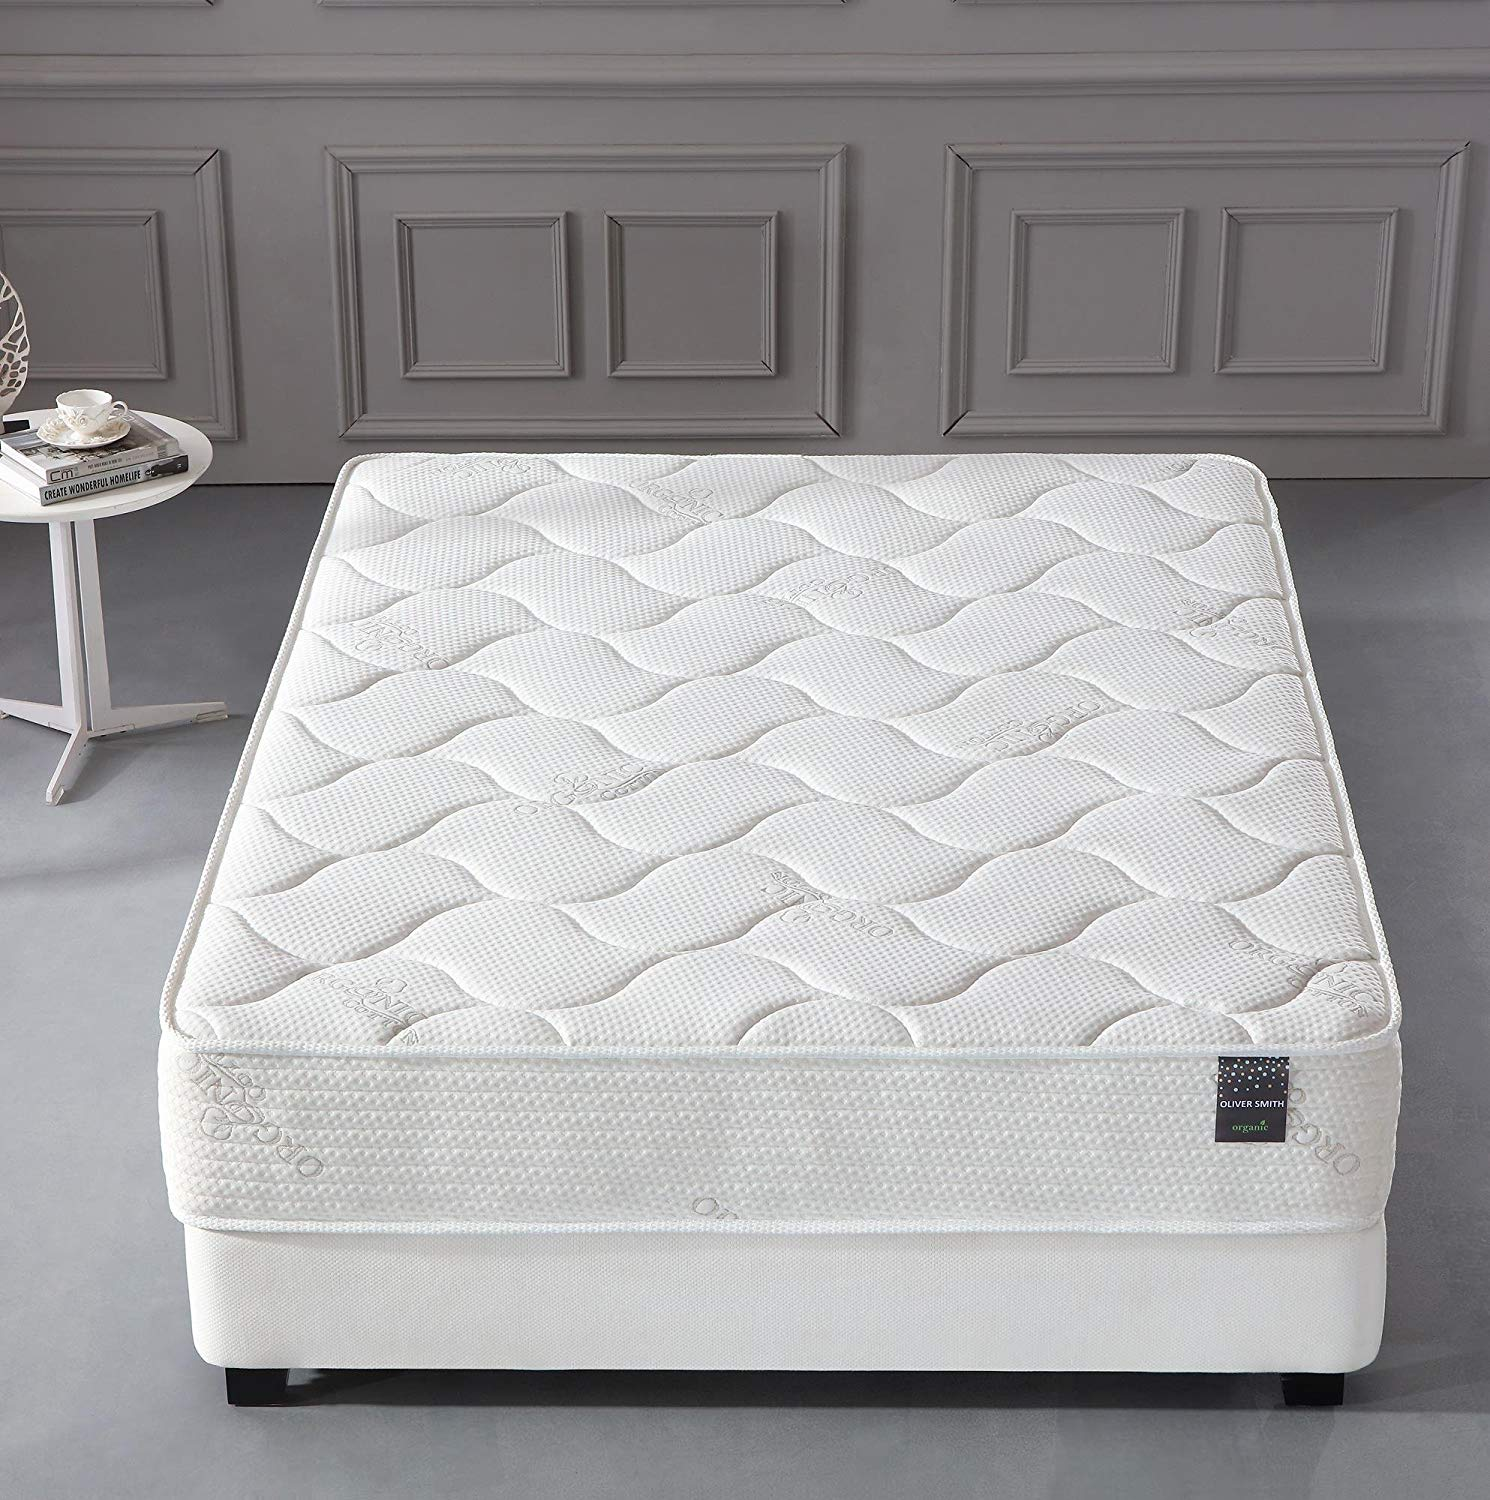 Affordable Organic Mattress by Oliver Smith